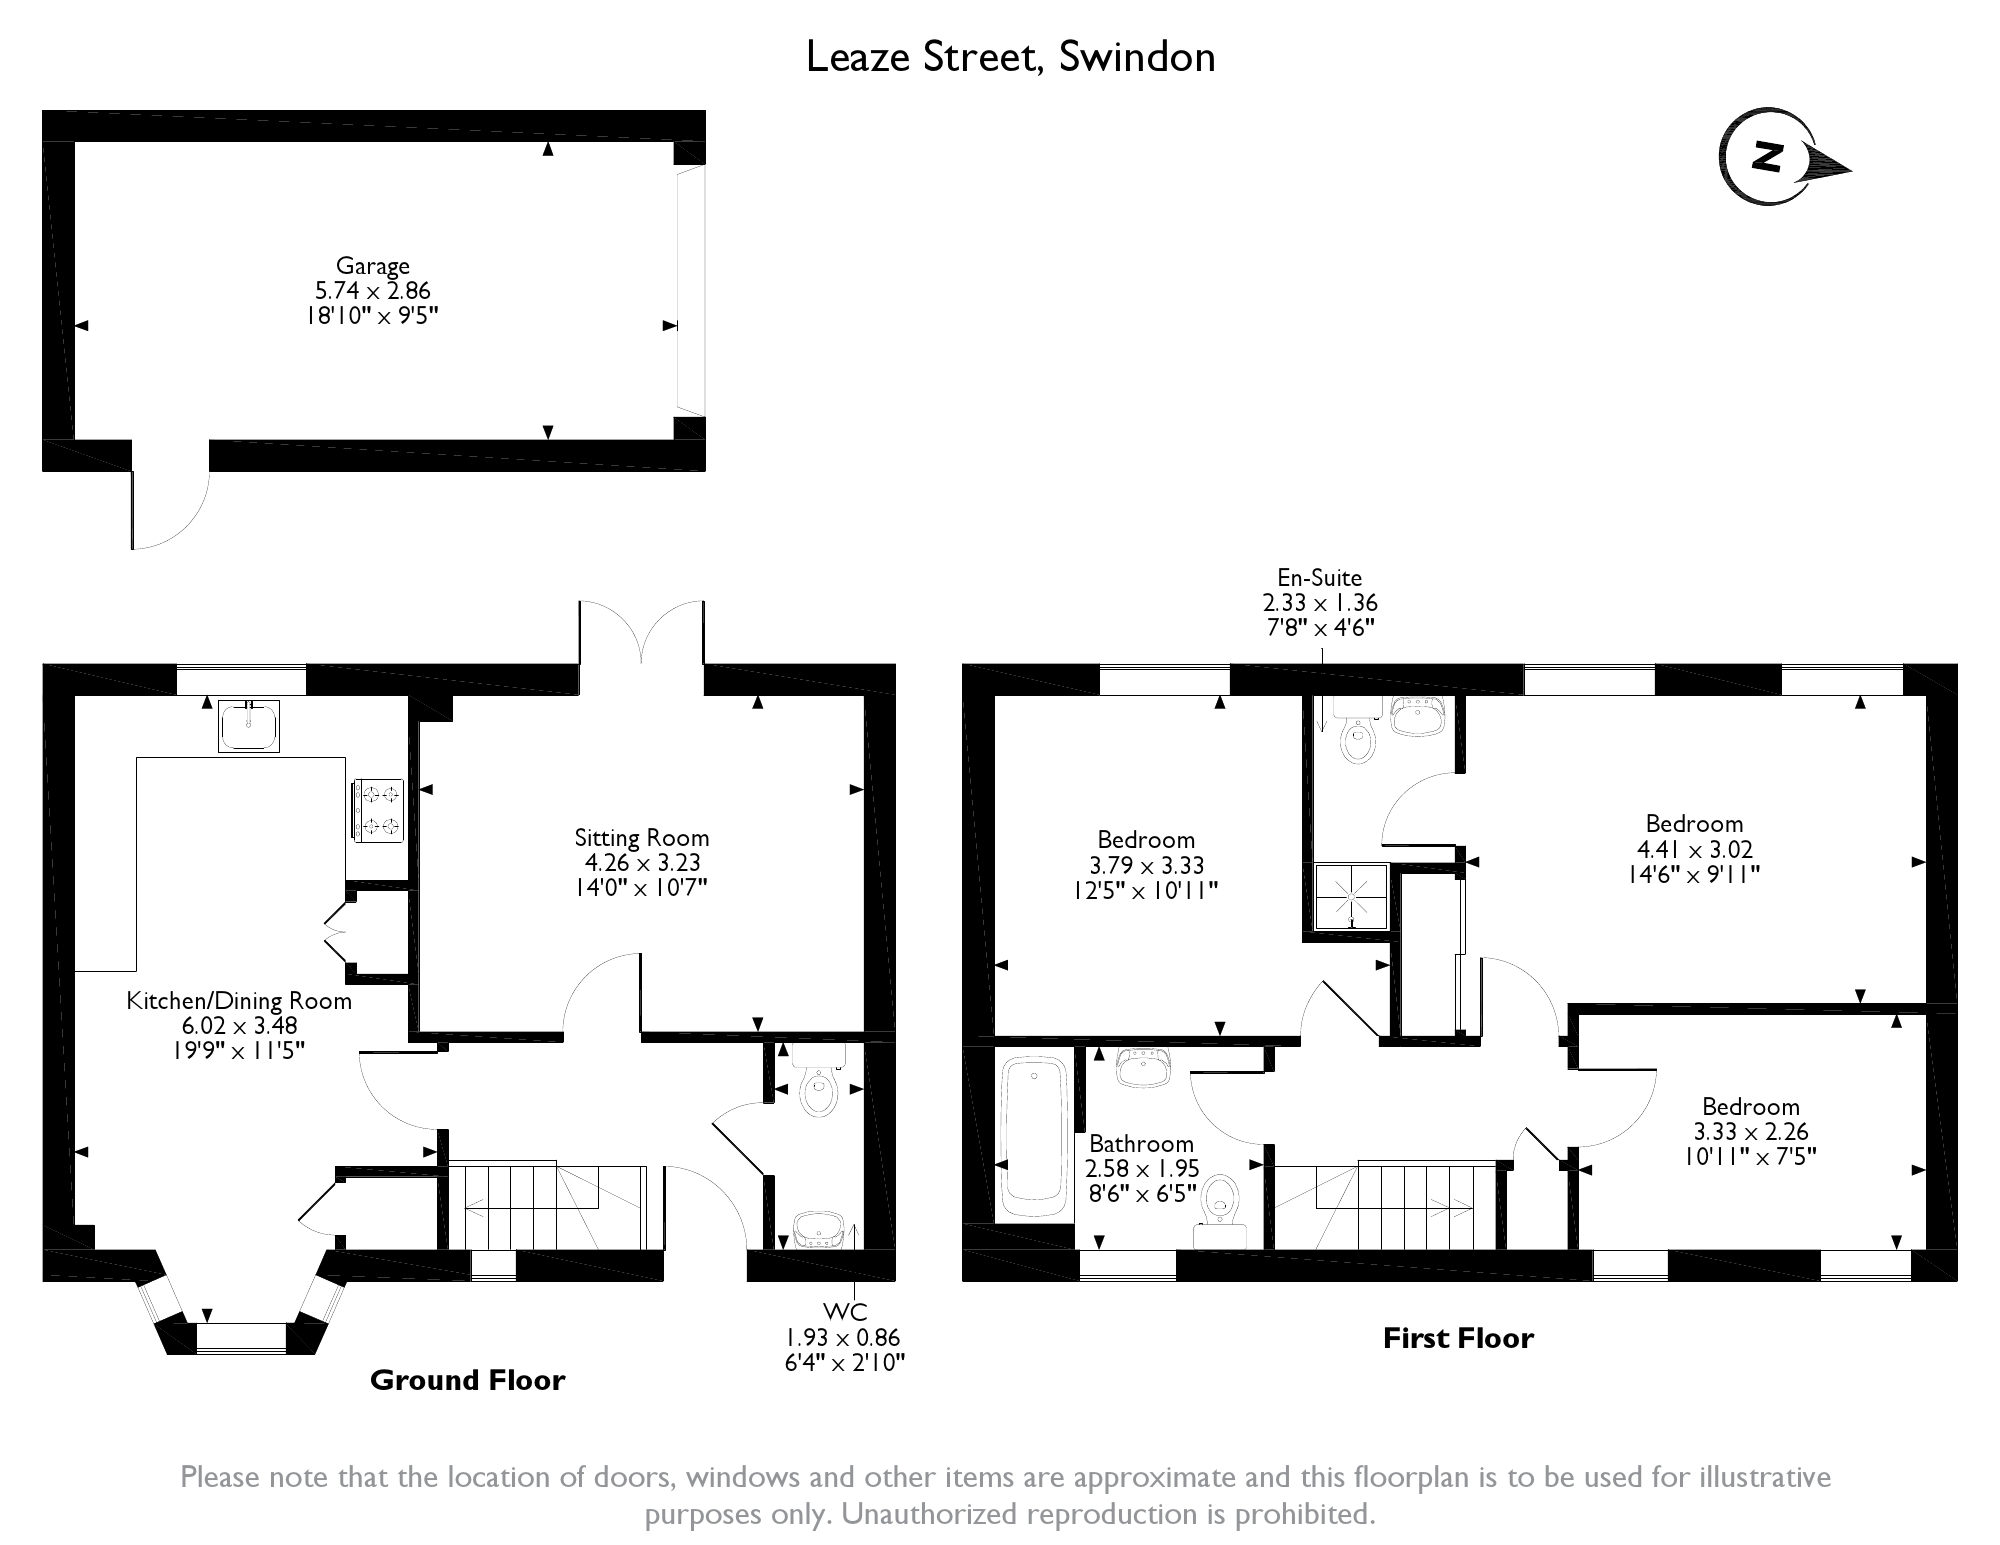 Leaze Street, Swindon, SN1 floor plan